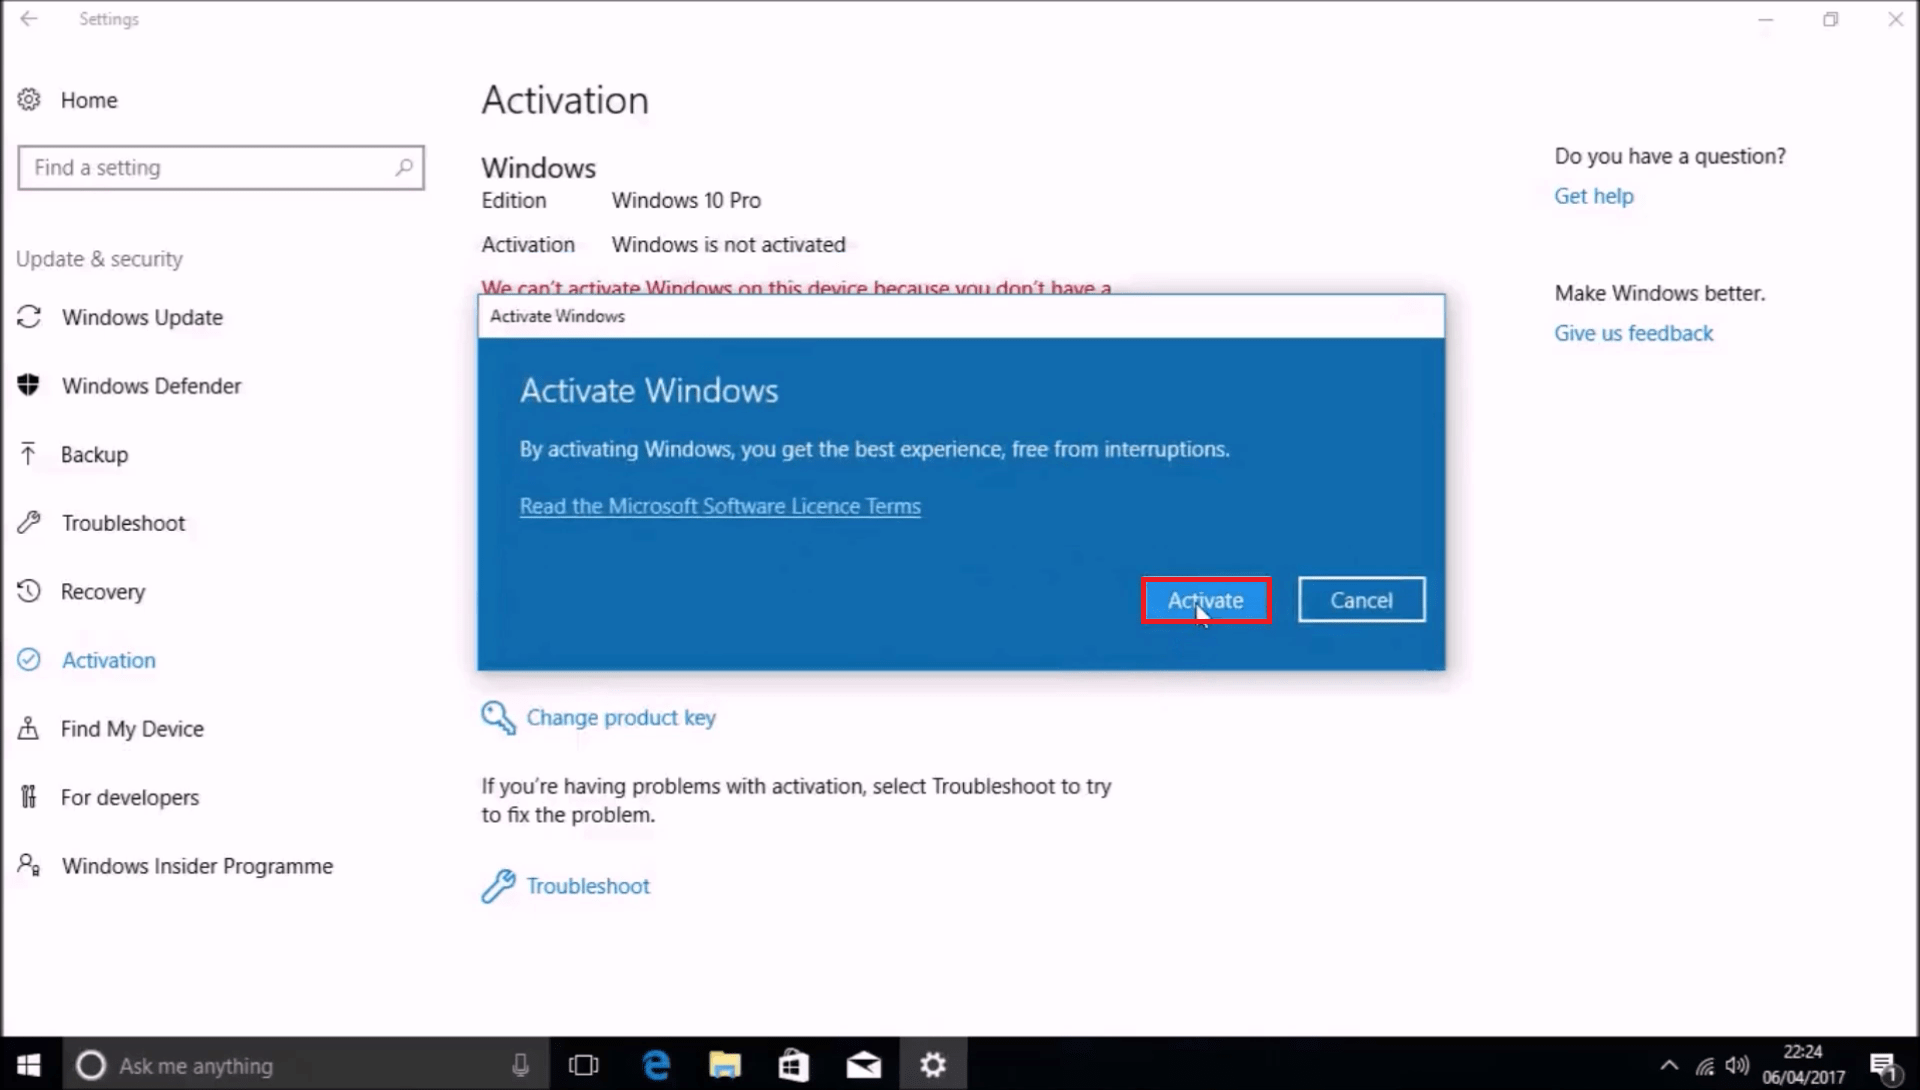 windows 10 build 10586 product key